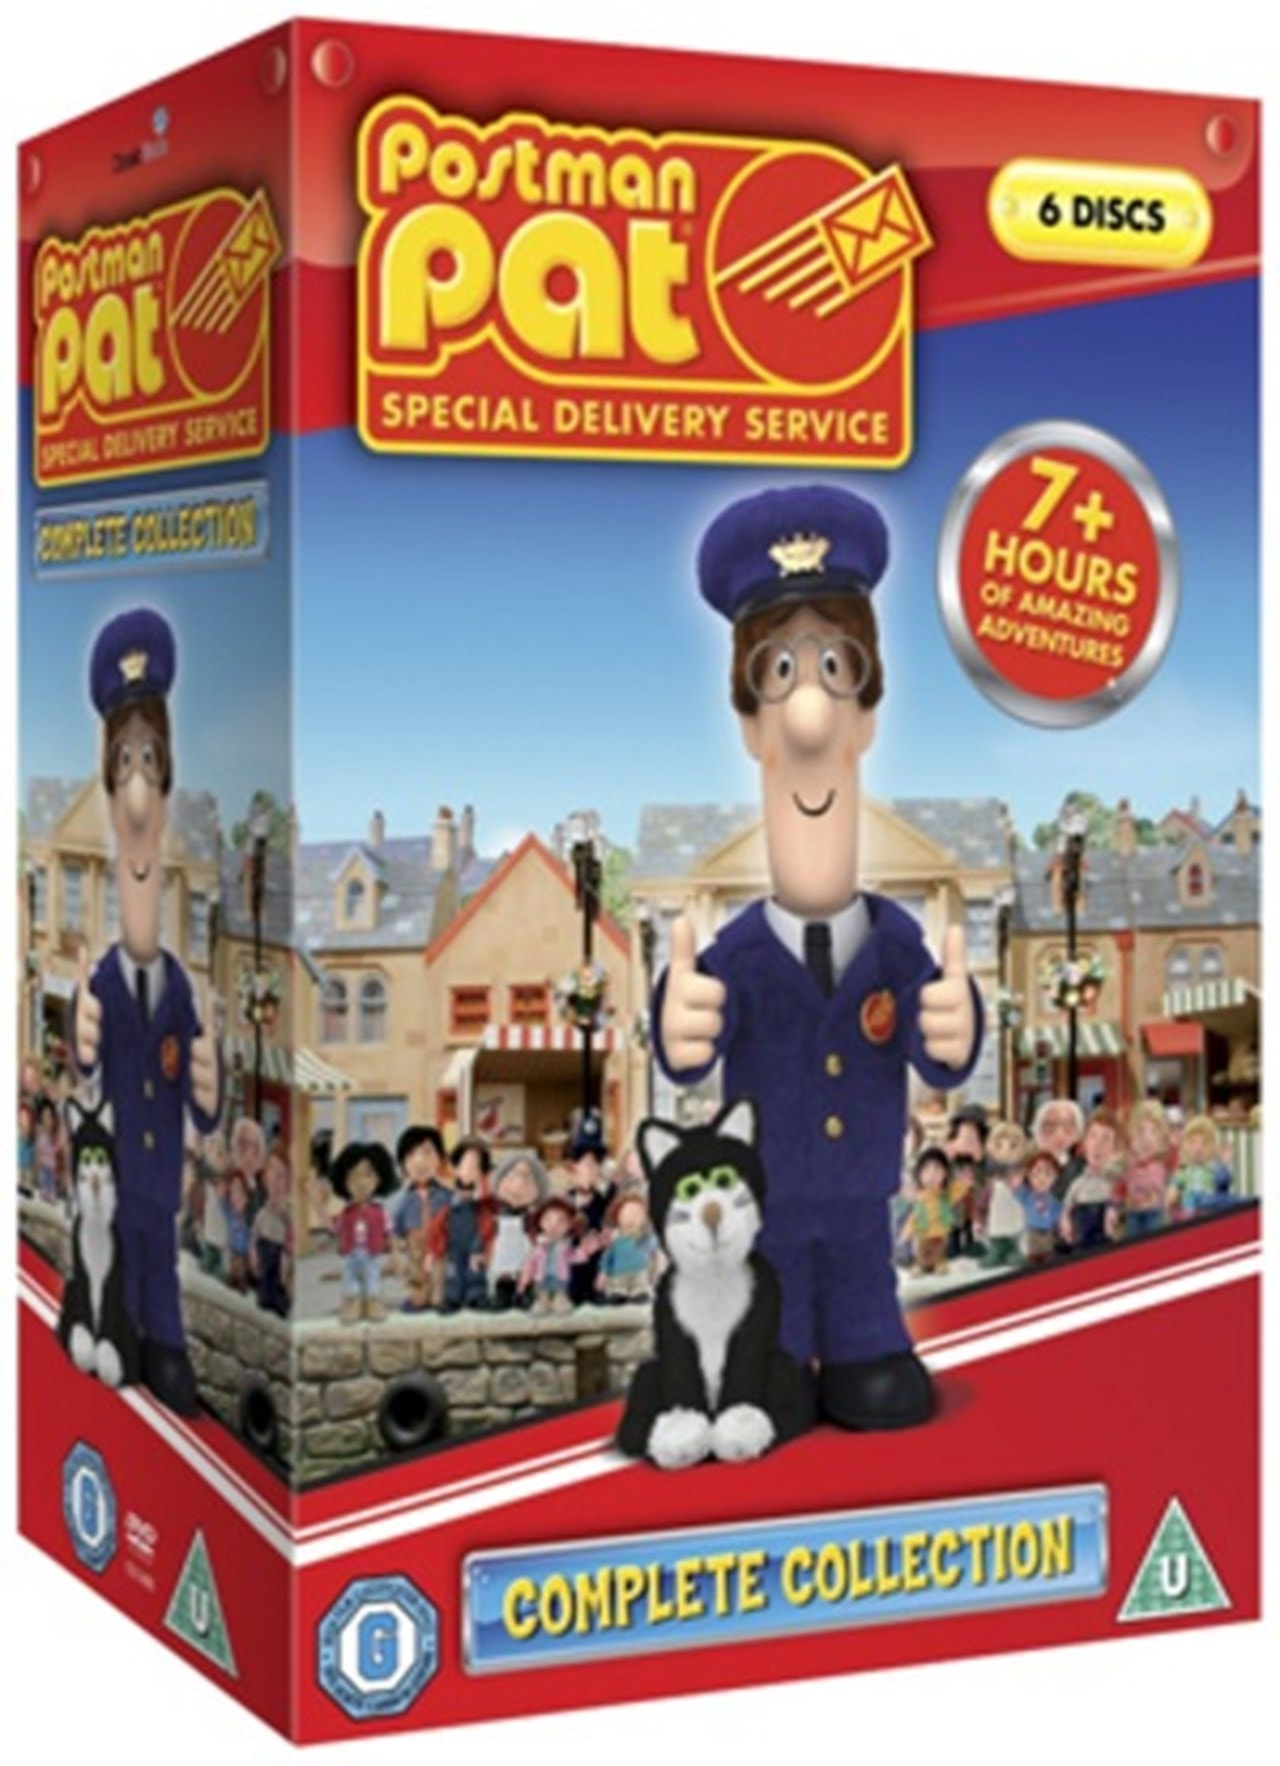 Postman Pat - Special Delivery Service: Complete Collection - 1